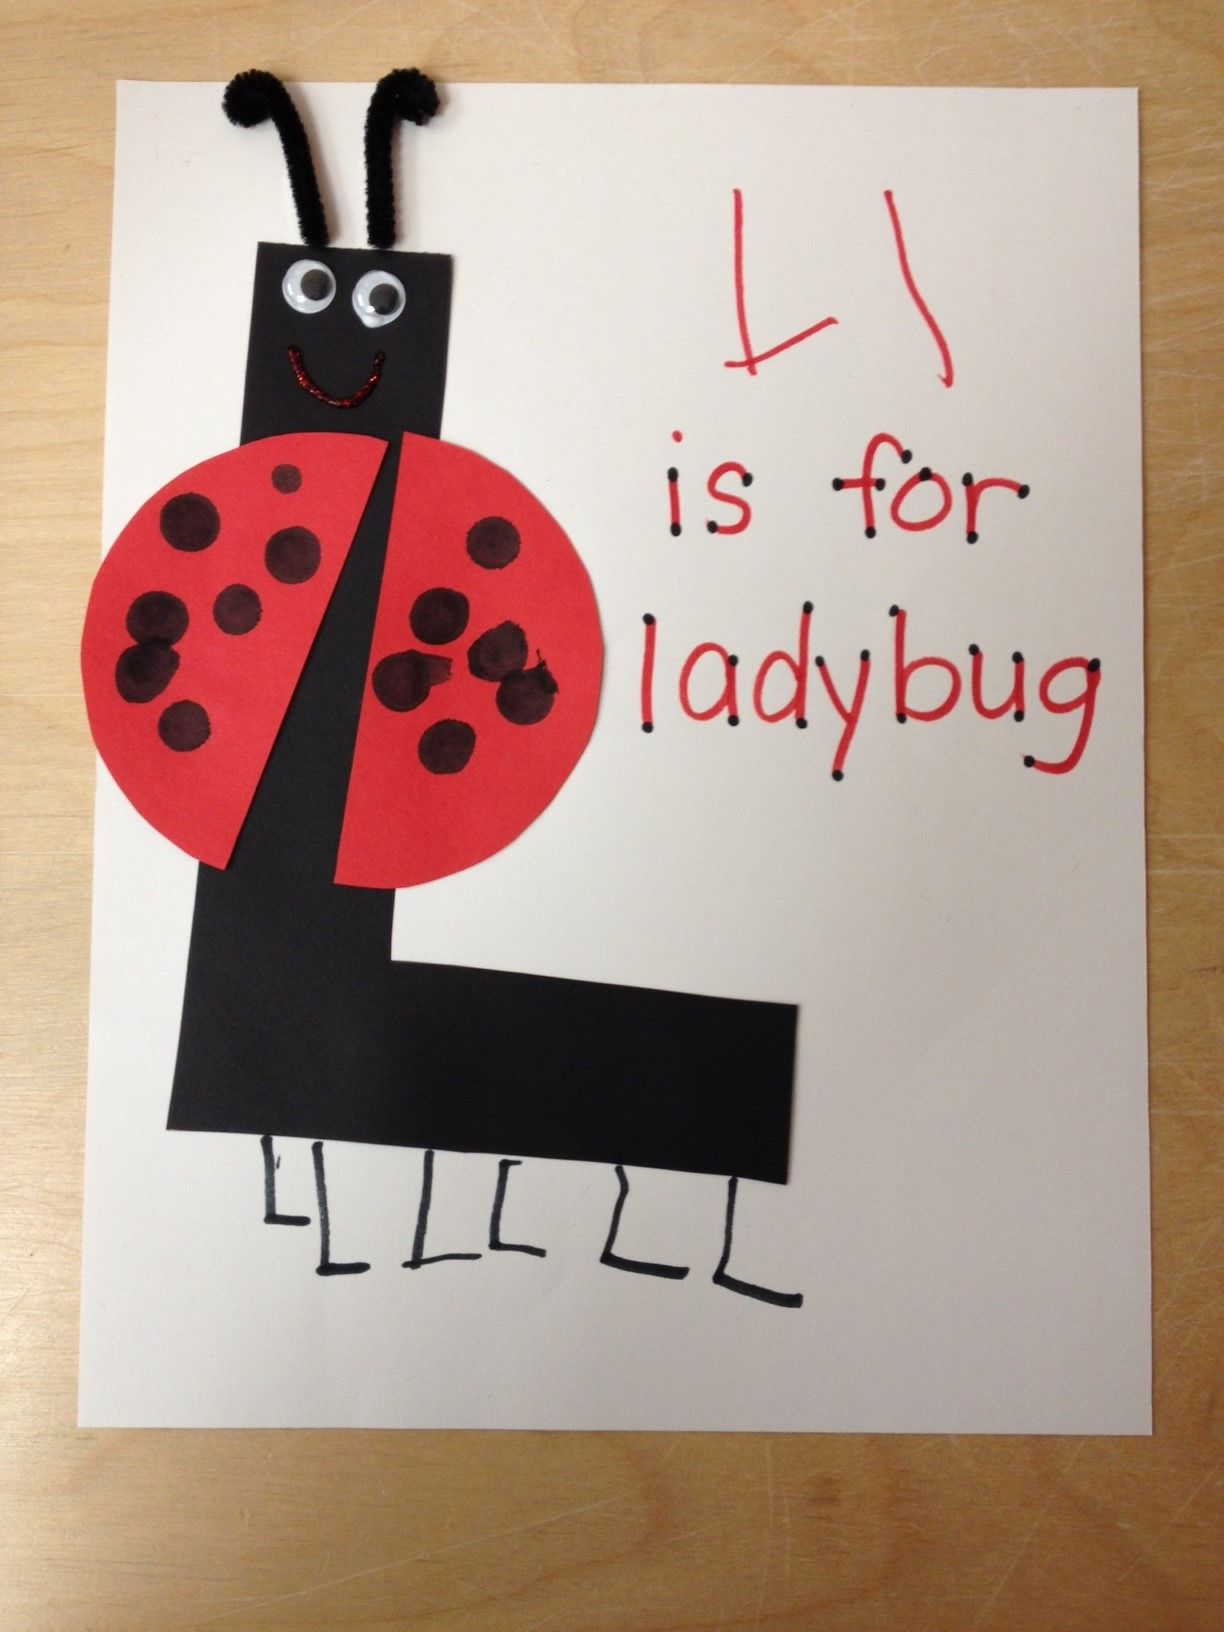 Ll Is For Ladybug